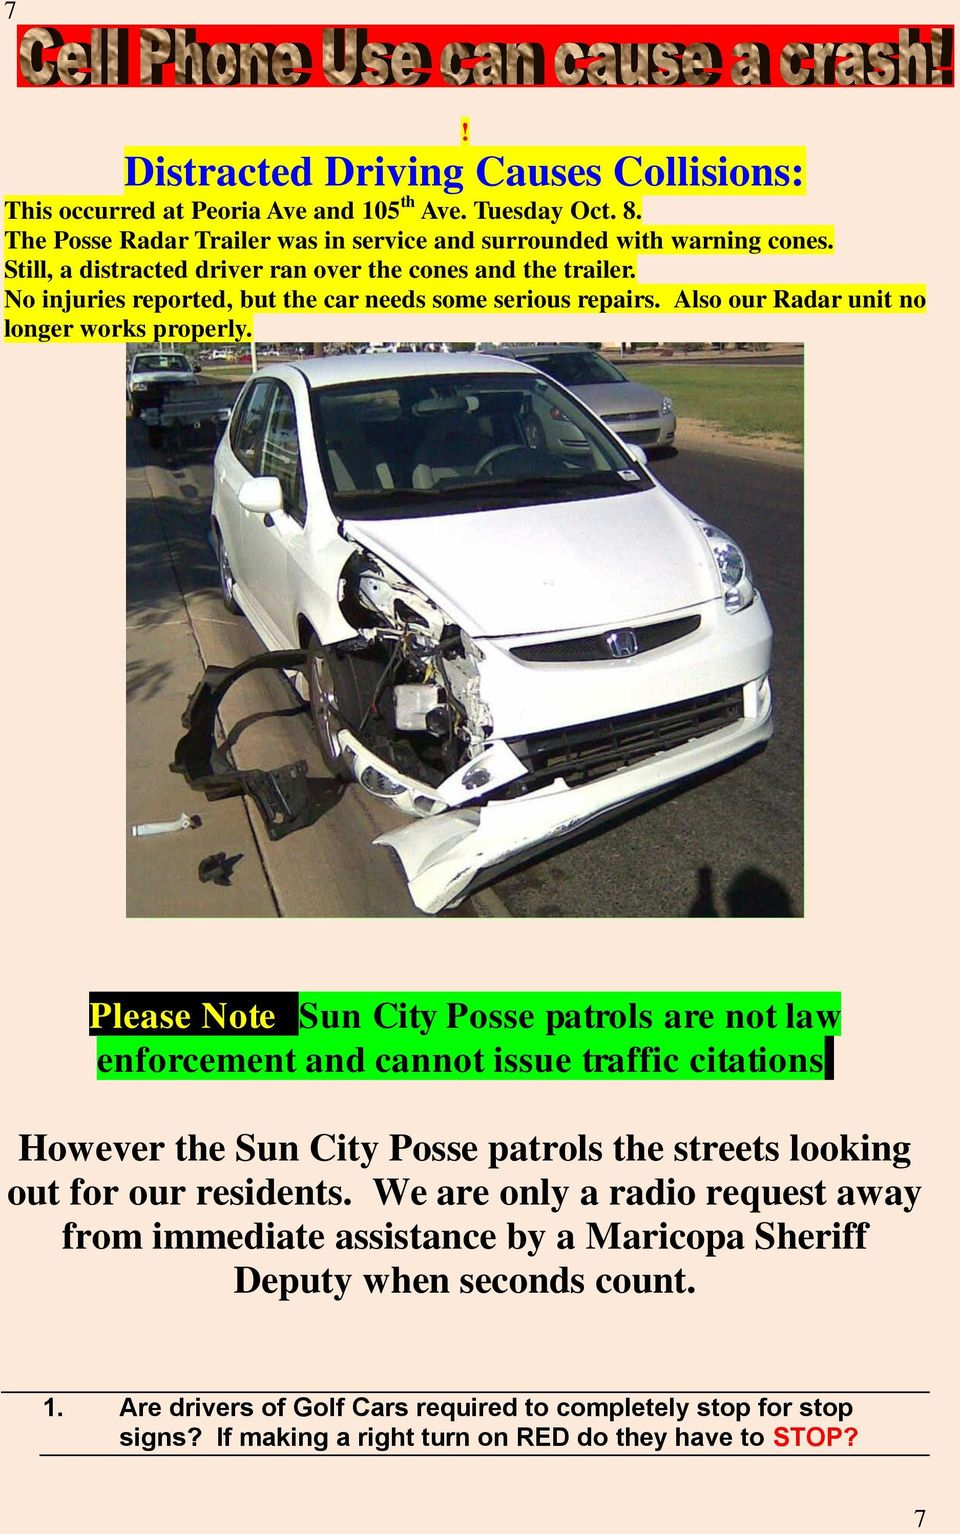 Please Note: Sun City Posse patrols are not law enforcement and cannot issue traffic citations. However the Sun City Posse patrols the streets looking out for our residents.